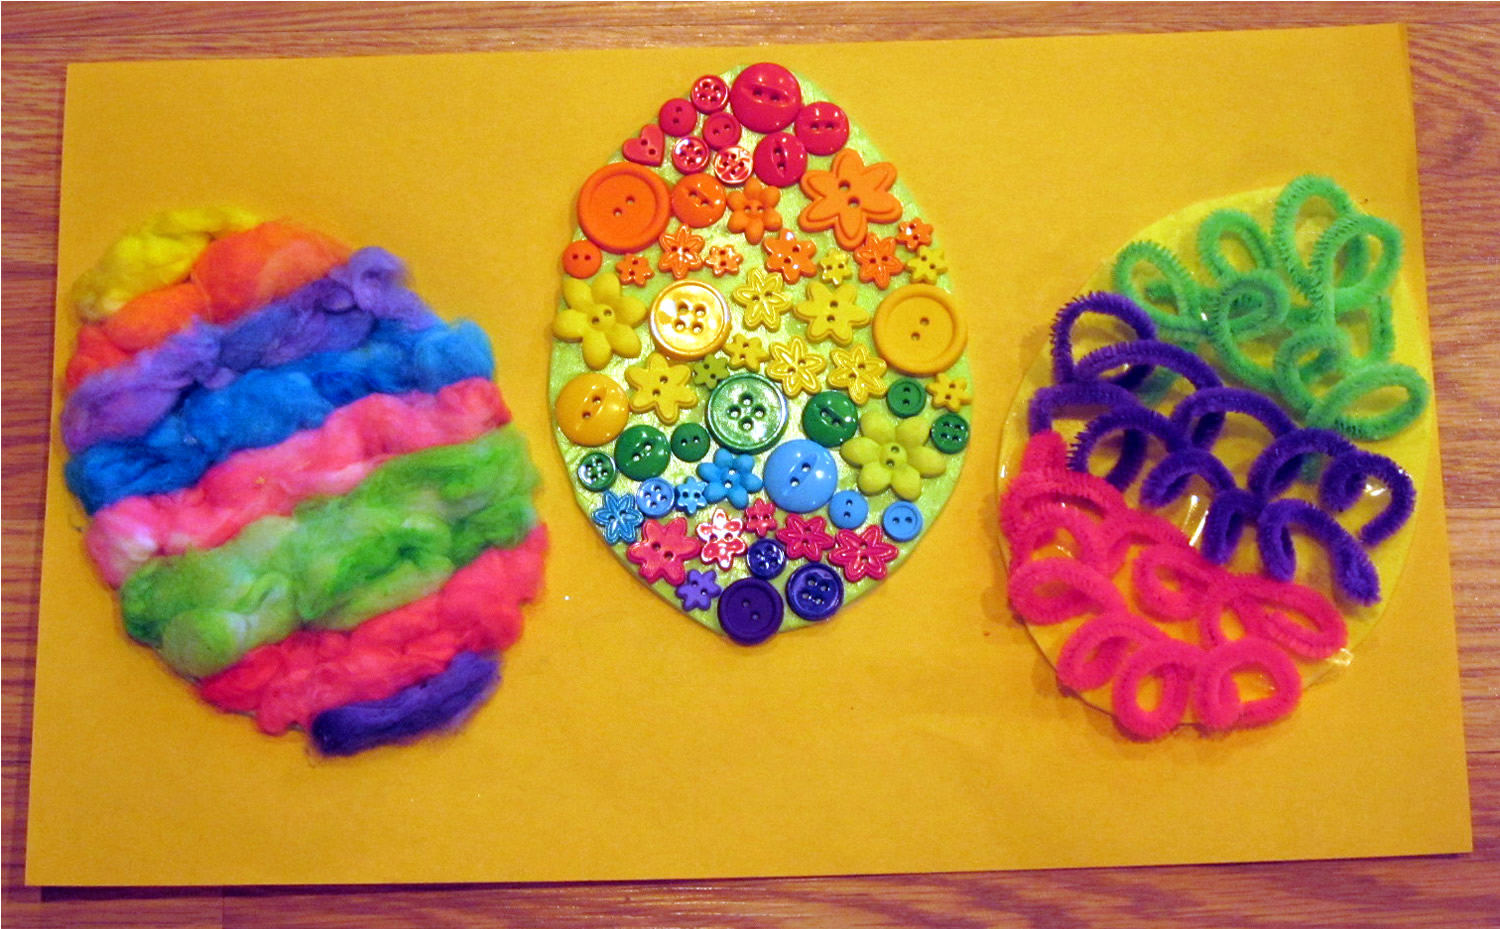 Easter arts and crafts ideas for children - Easter Arts And Crafts Ideas For Children 21